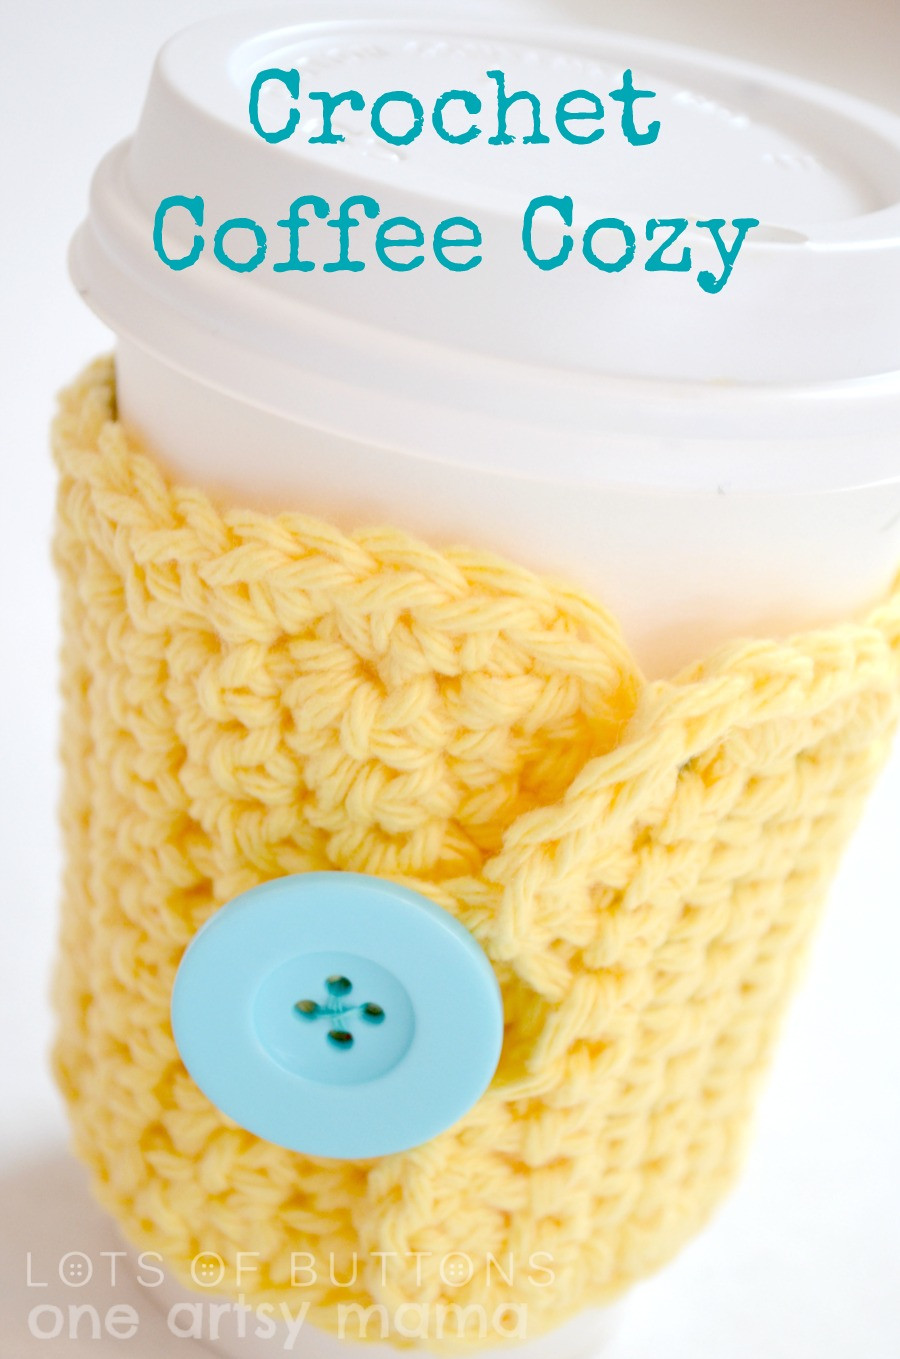 Crochet Coffee Cup Cozy Lovely Crochet Coffee Cozy Amy Latta Creations Of Crochet Coffee Cup Cozy Awesome Crochet Coffee Cozy Amy Latta Creations